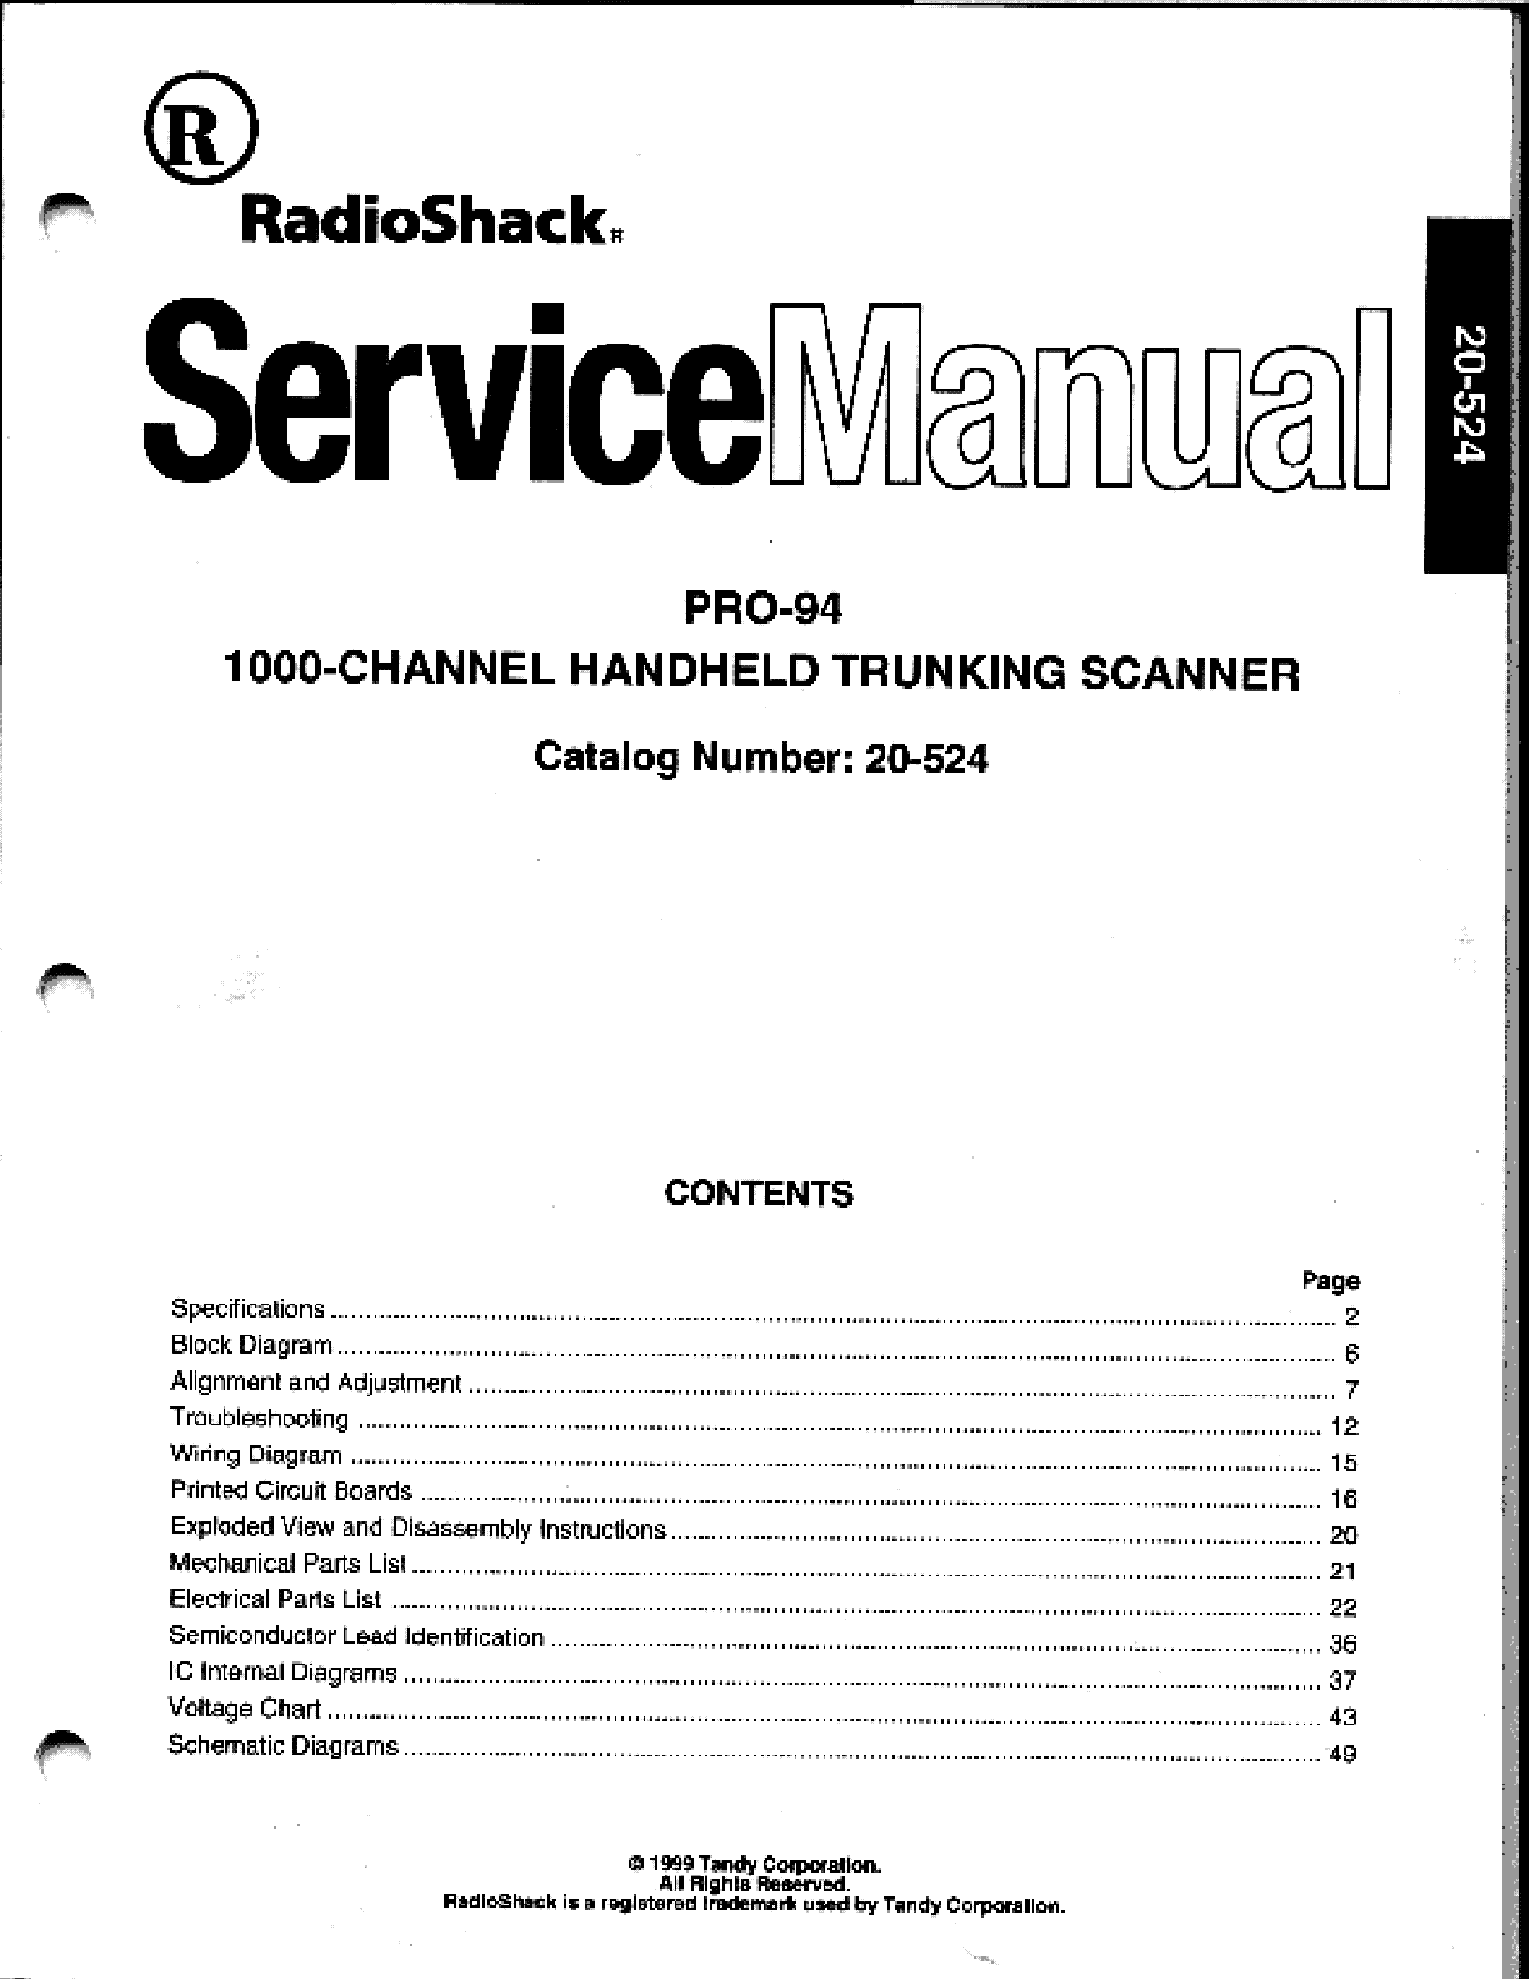 radioshack pro 94 service manual download schematics eeprom rh elektrotanya com radio shack pro 94 scanner manual Radio Shack Pro 2.0